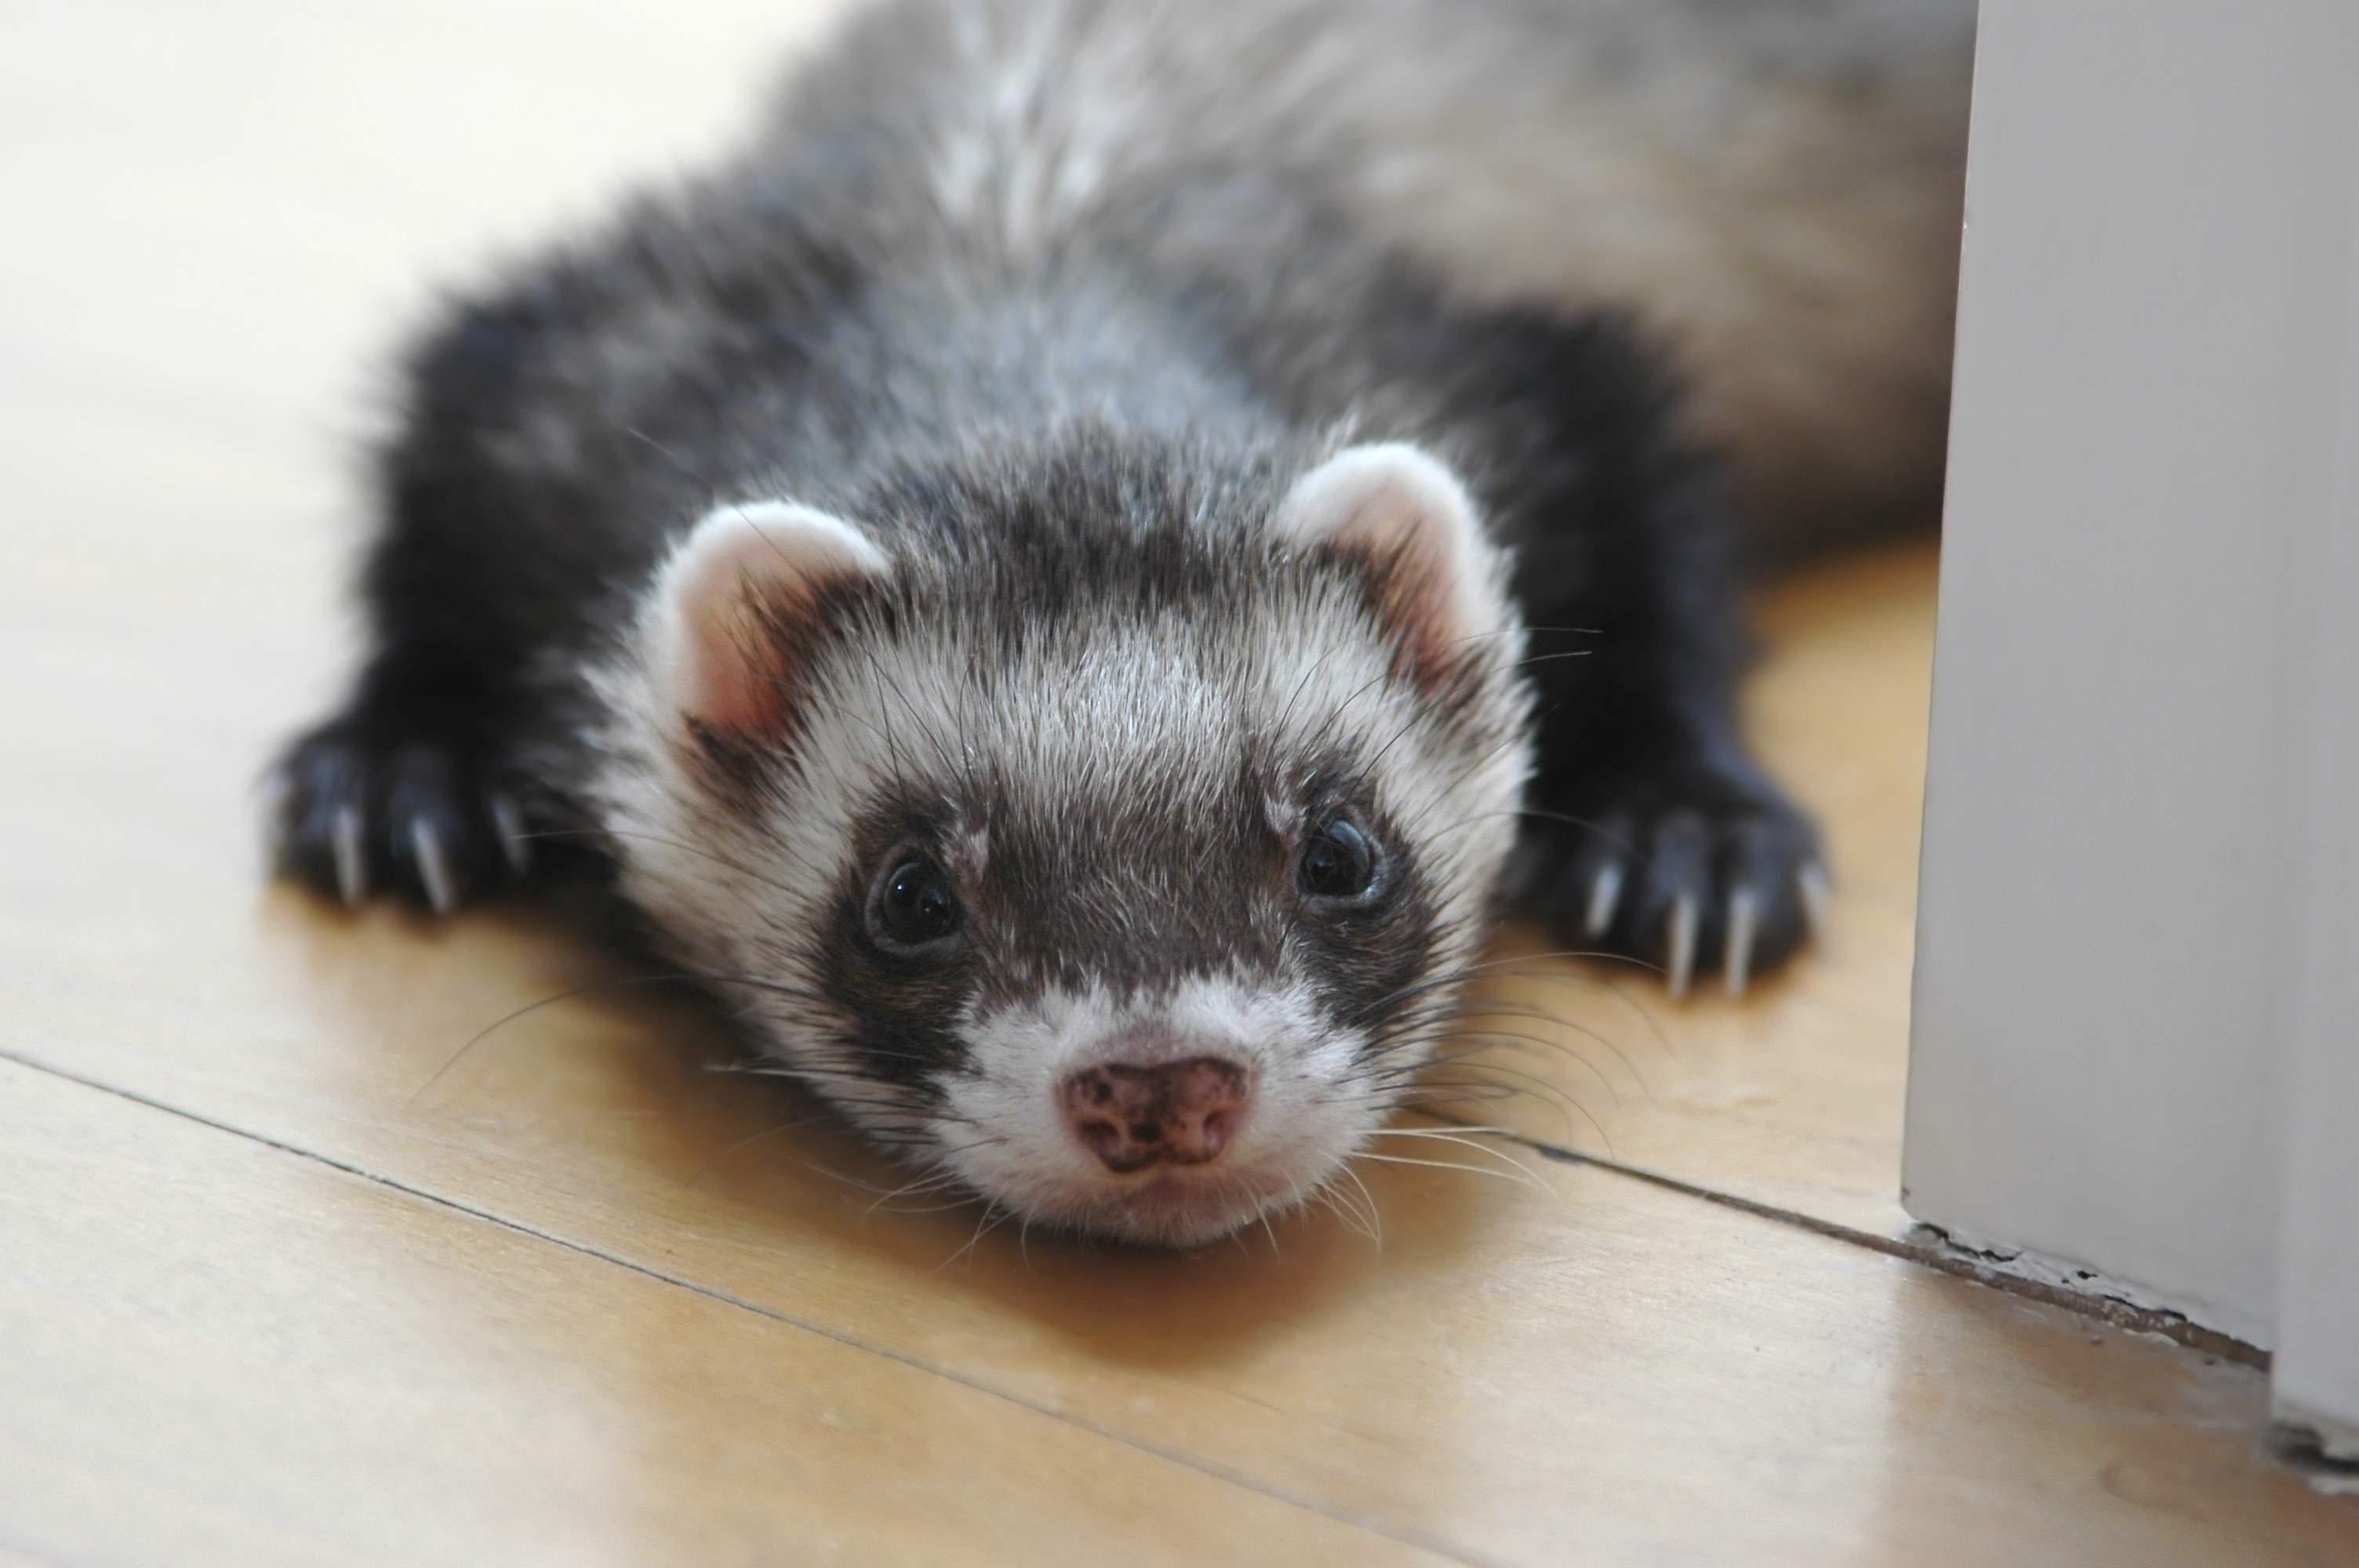 pet ferret on floor